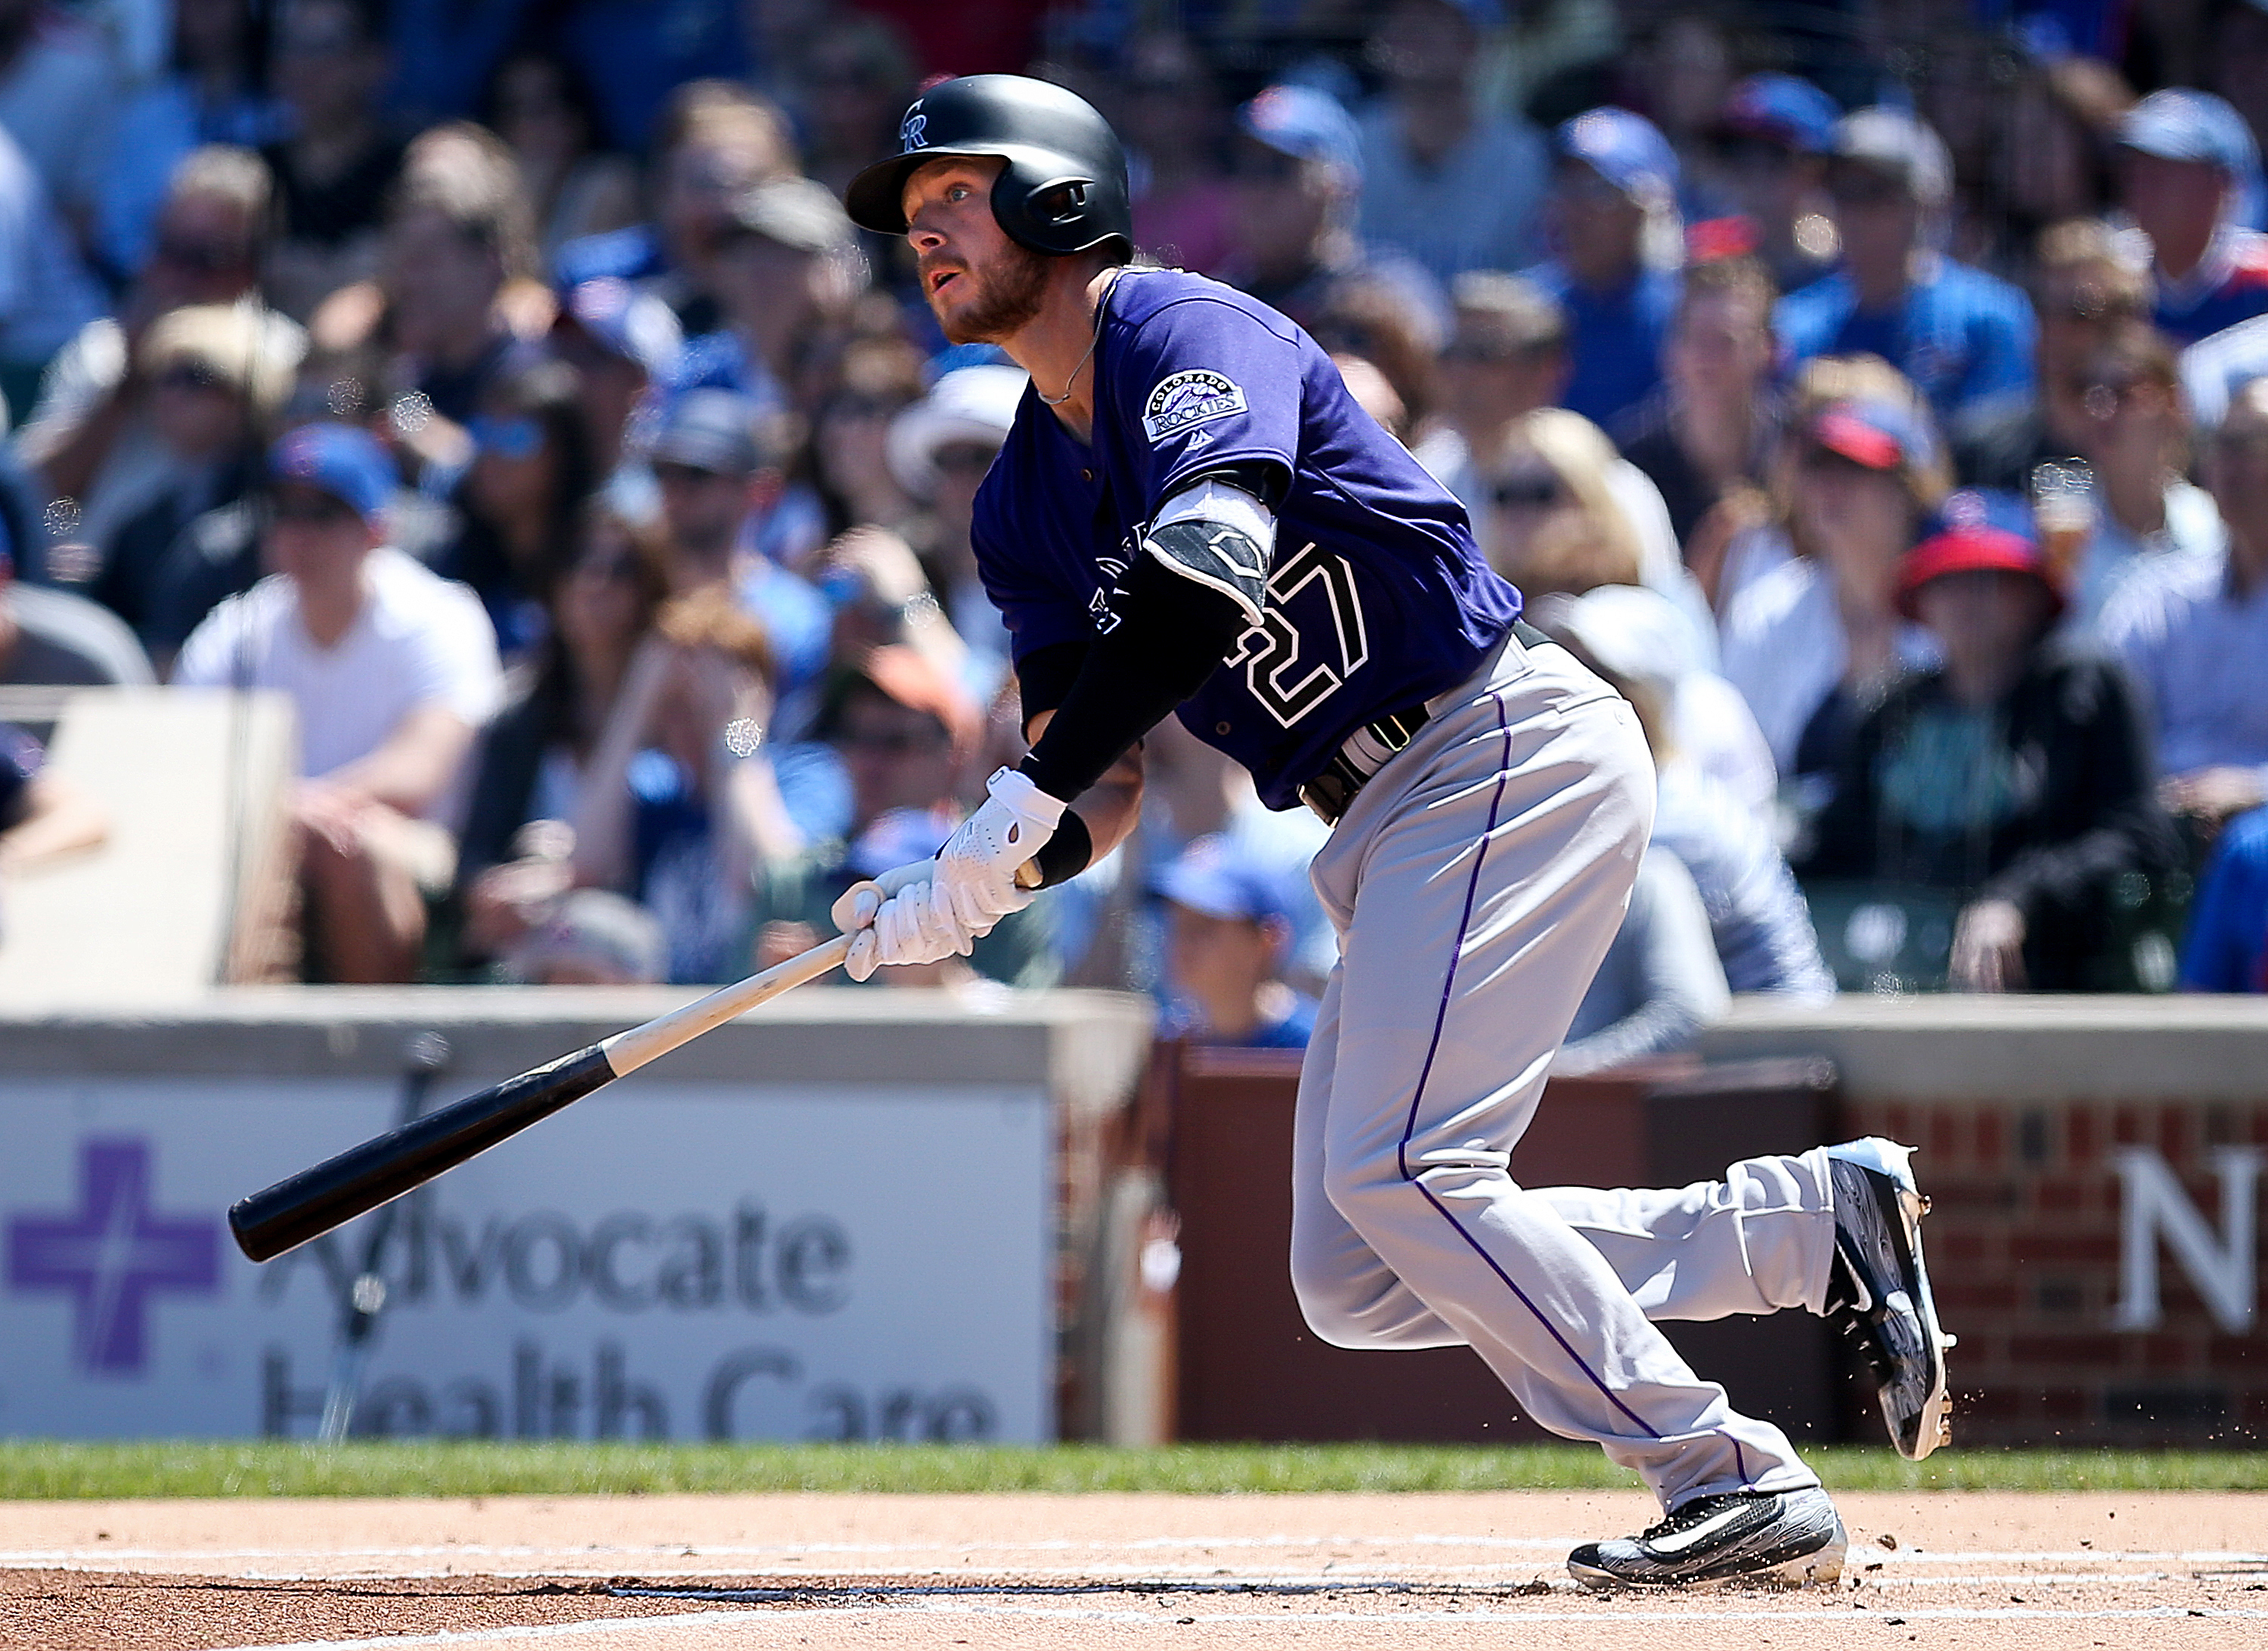 Trevor Story of the Colorado Rockies singles in the first inning against the Chicago Cubs at Wrigley Field on April 17, 2016 in Chicago. (Photo by Dylan Buell/Getty Images)